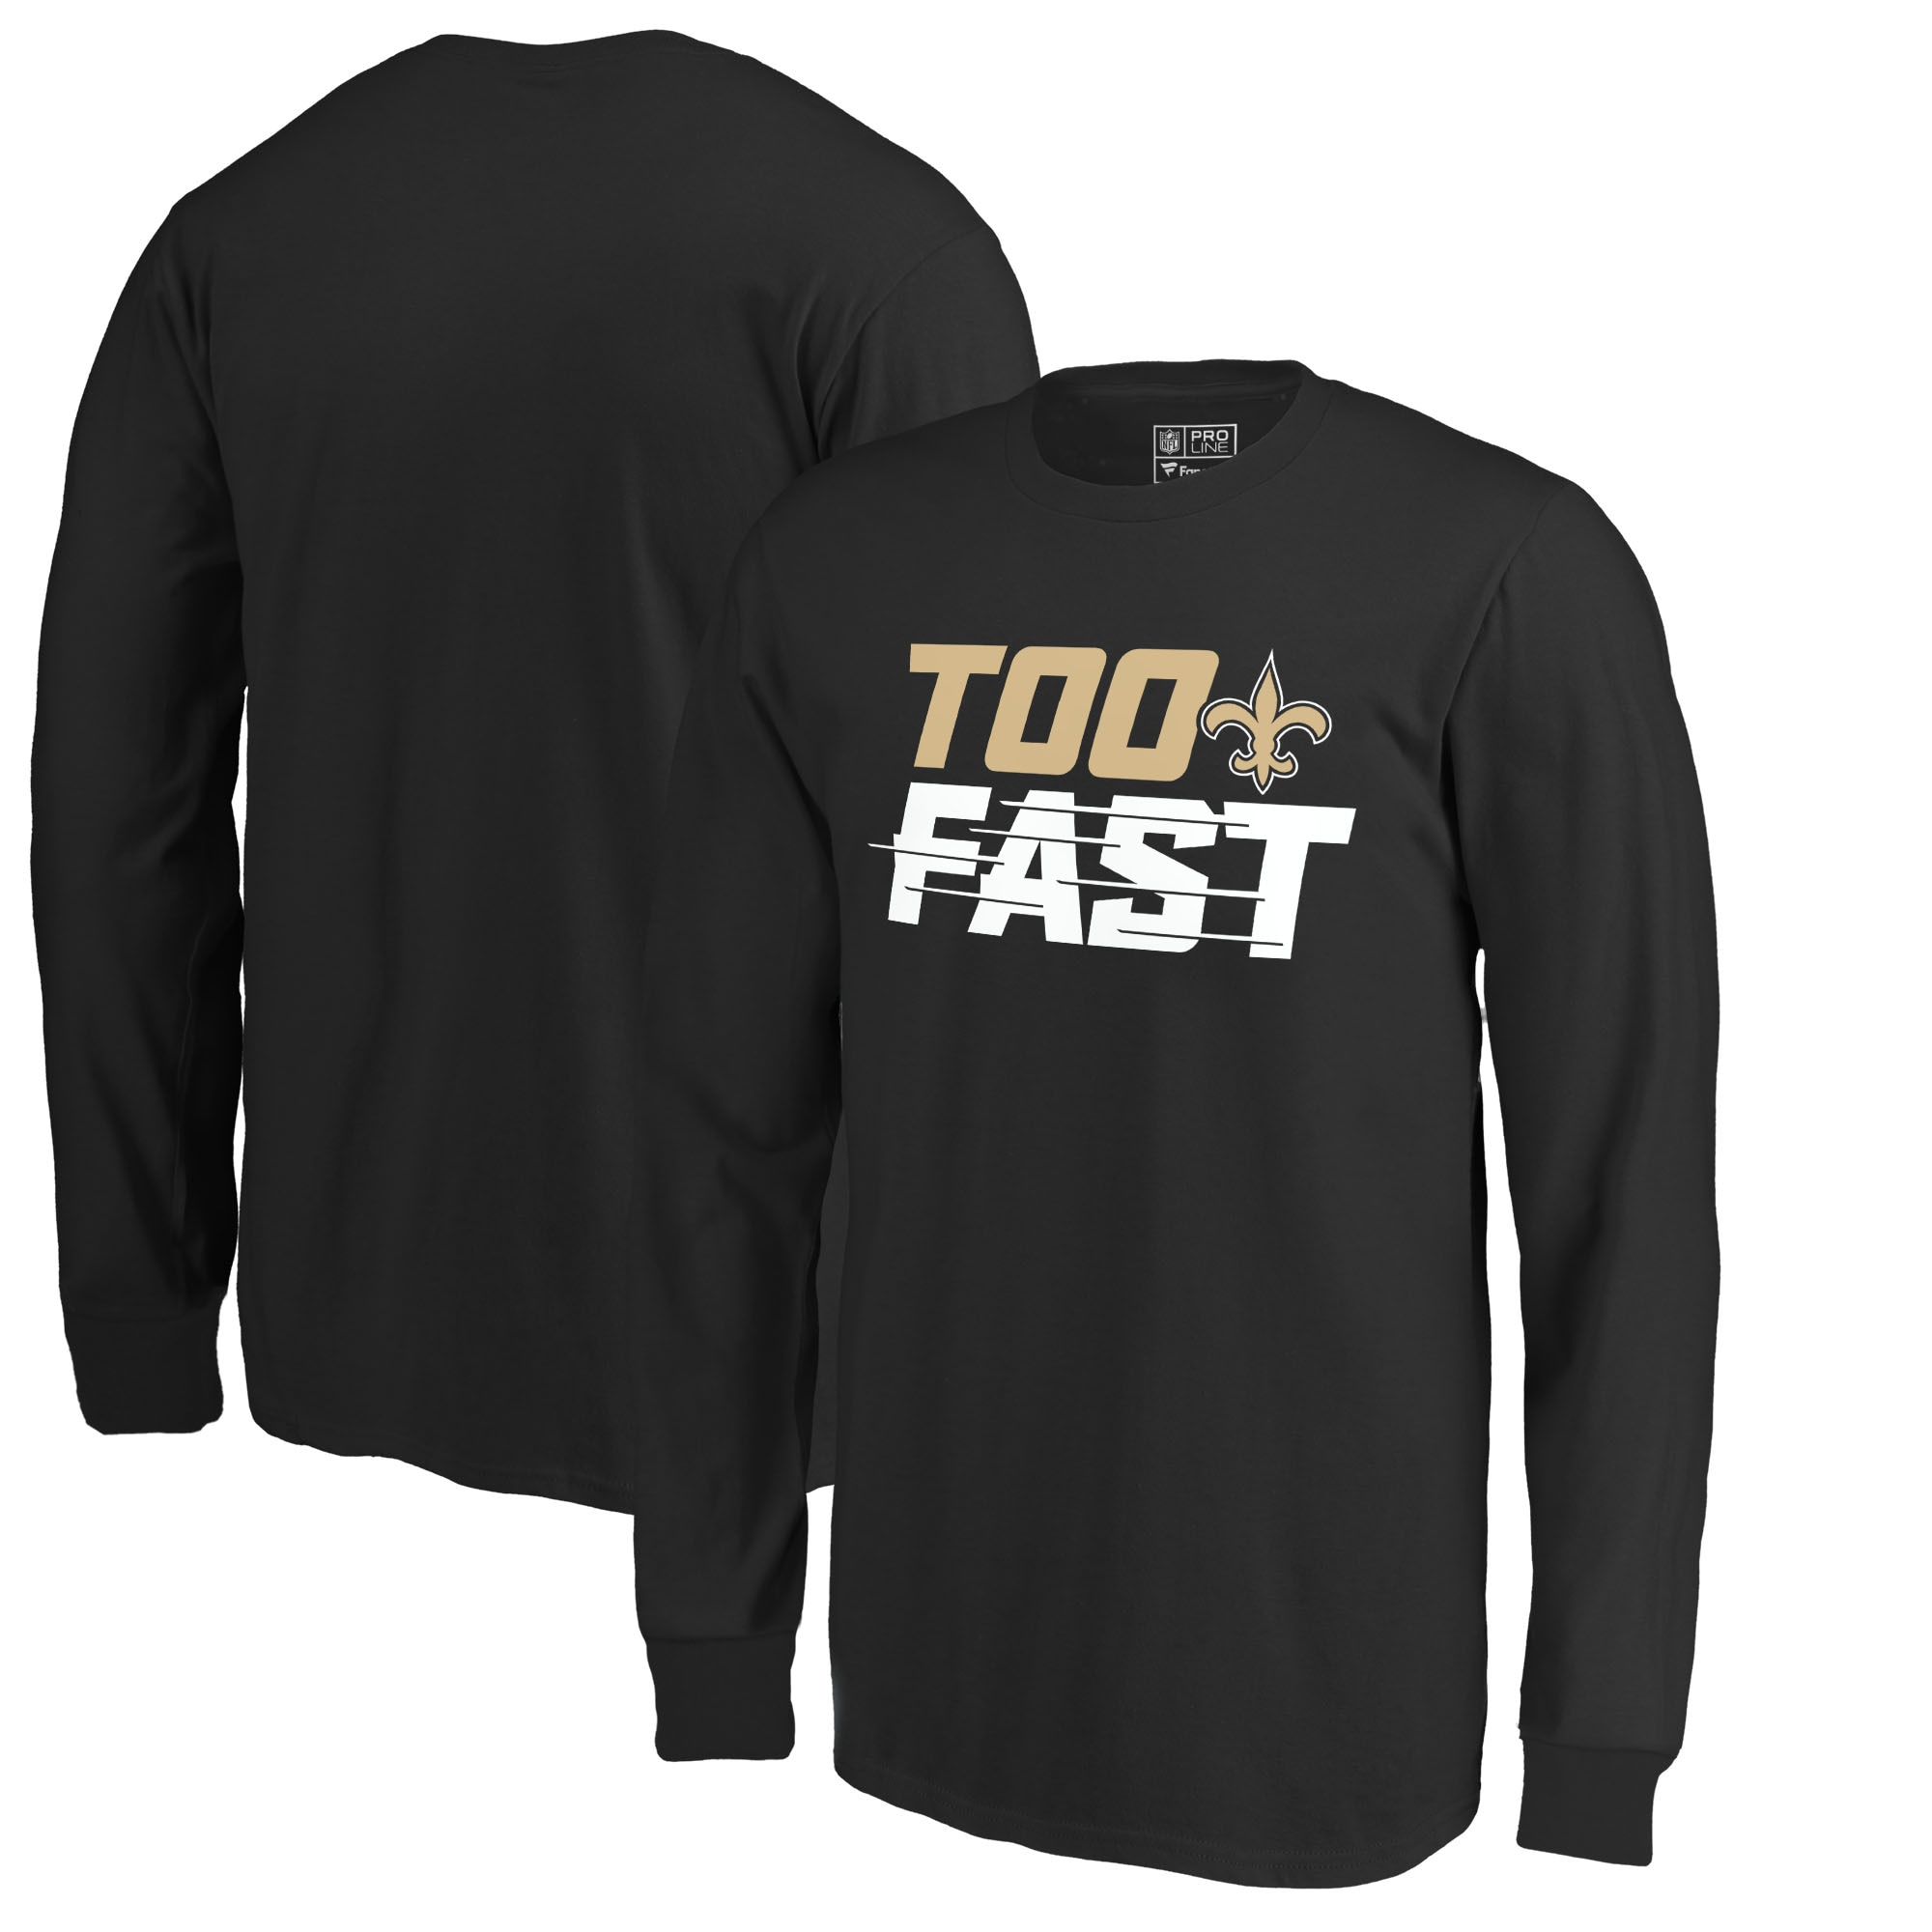 New Orleans Saints Fanatics Branded Youth Too Fast Long Sleeve T-Shirt - Black